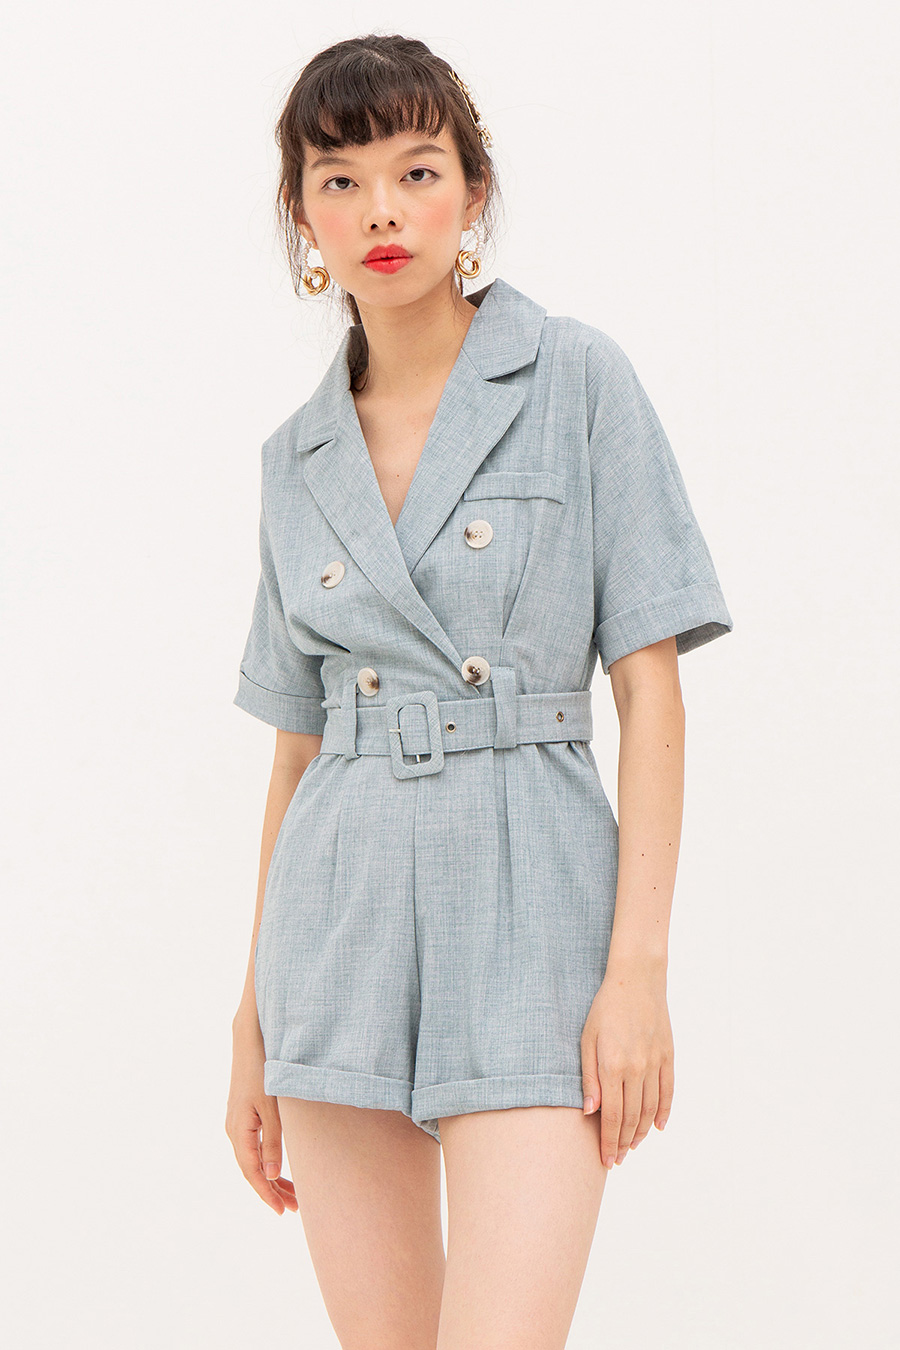 *RESTOCKED* DEON PLAYSUIT - POWDER